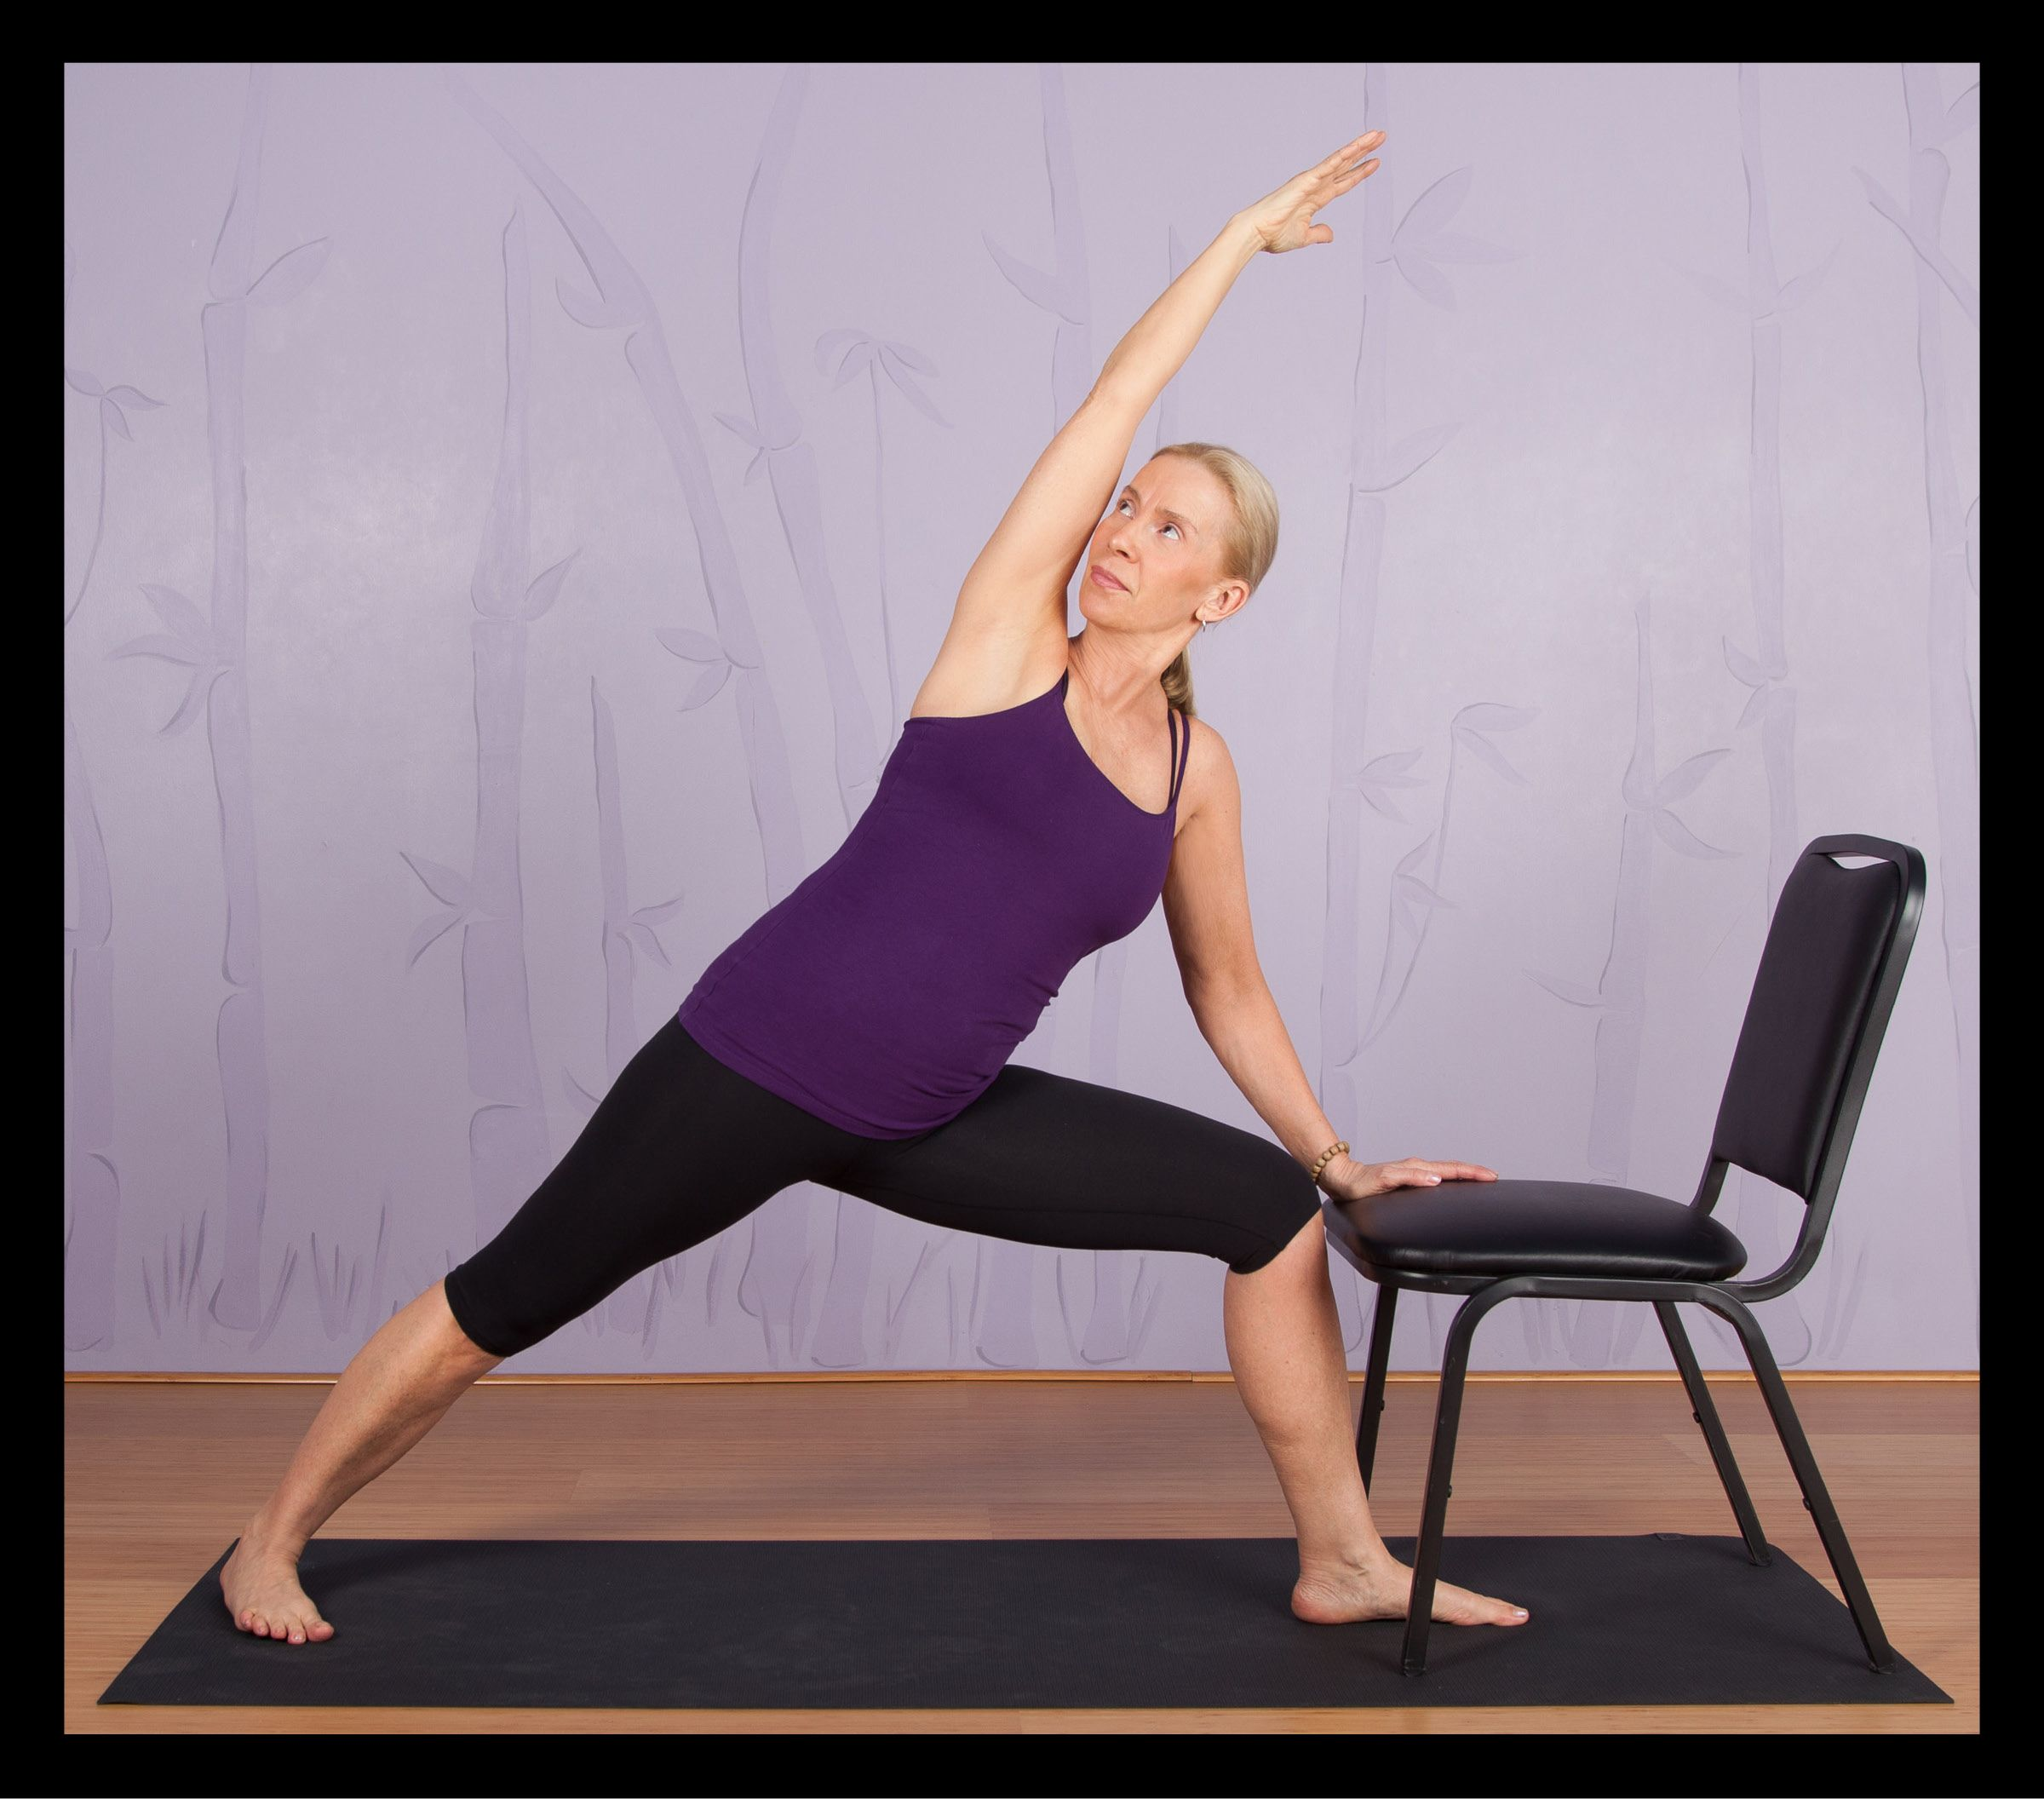 yoga chair exercises for seniors hanging christchurch top poses holicsyoga holics